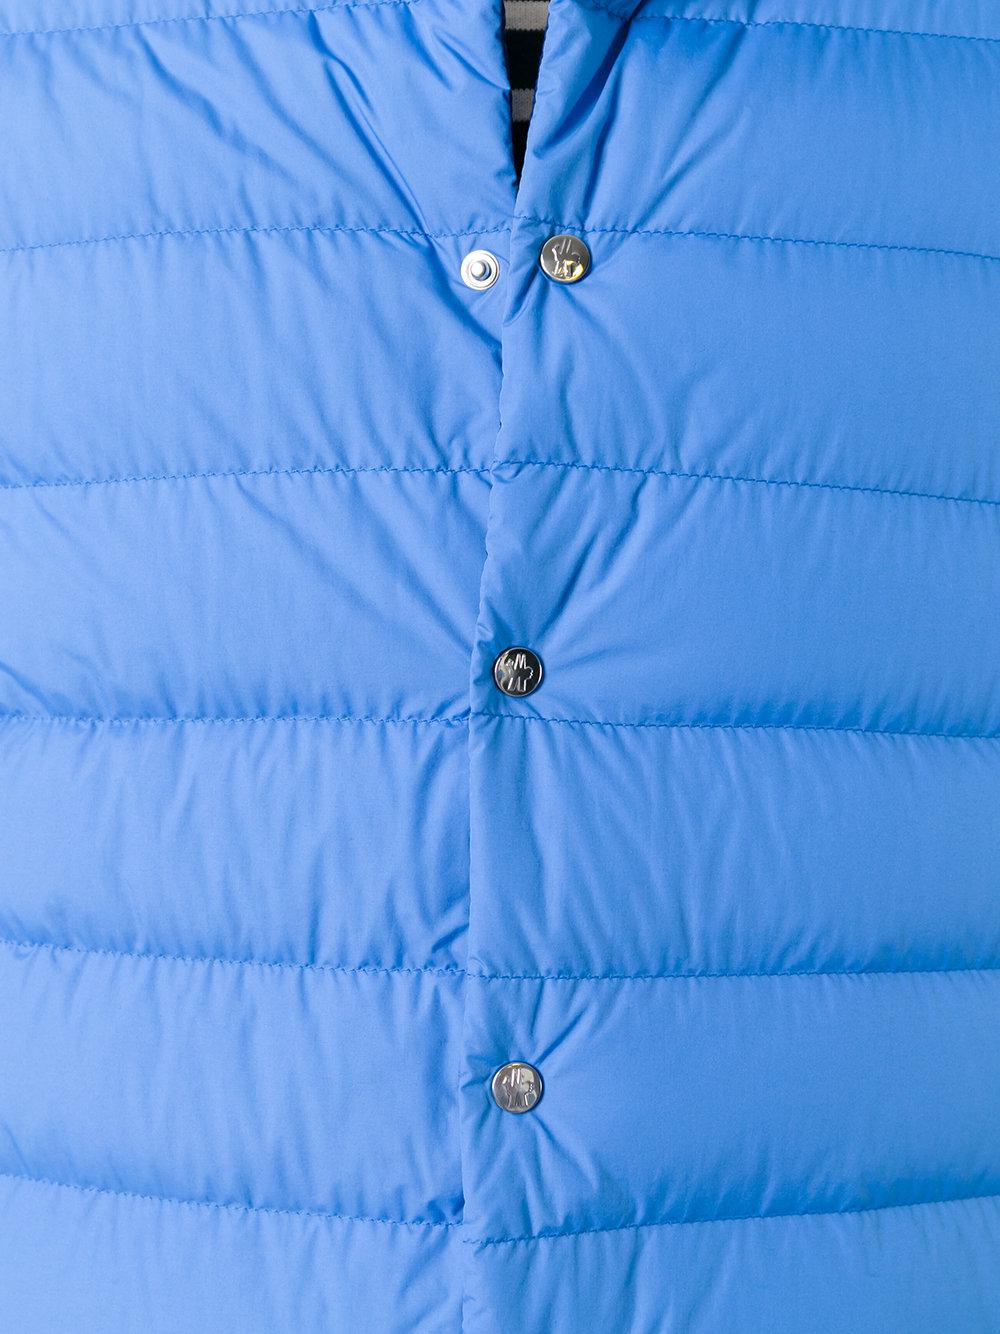 434e276c7 Moncler Cyclope Padded Jacket in Blue for Men - Lyst